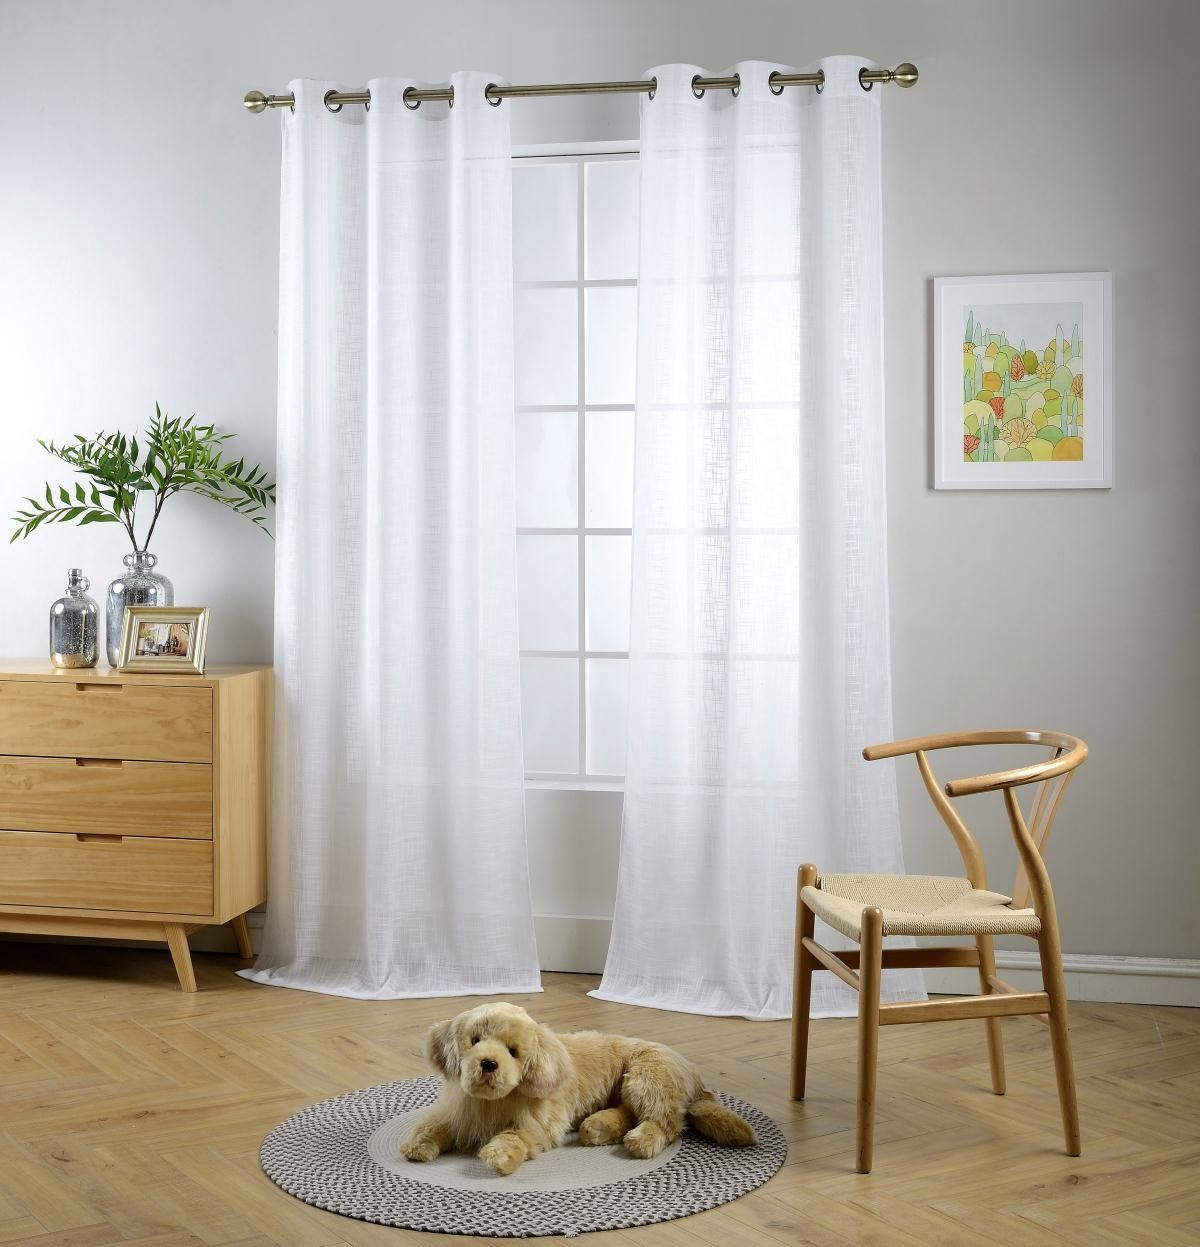 Miuco white sheer curtains poly linen textured solid grommet curtains 84 inches long for living room 2 panels 2 x 37 wide x 84 long white pinterest